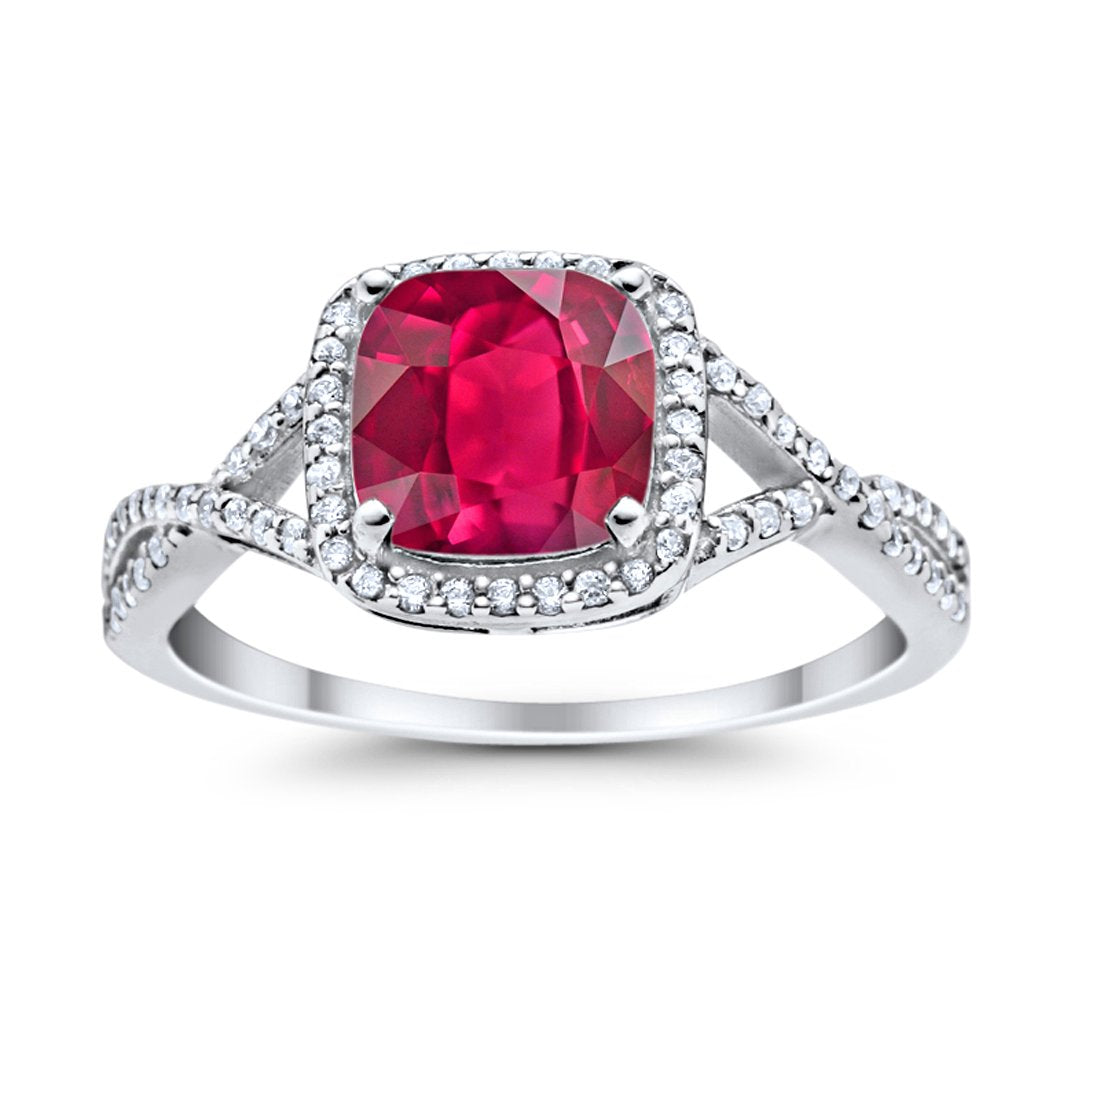 Halo Infinity Shank Engagement Ring Cushion Round Simulated Ruby CZ 925 Sterling Silver